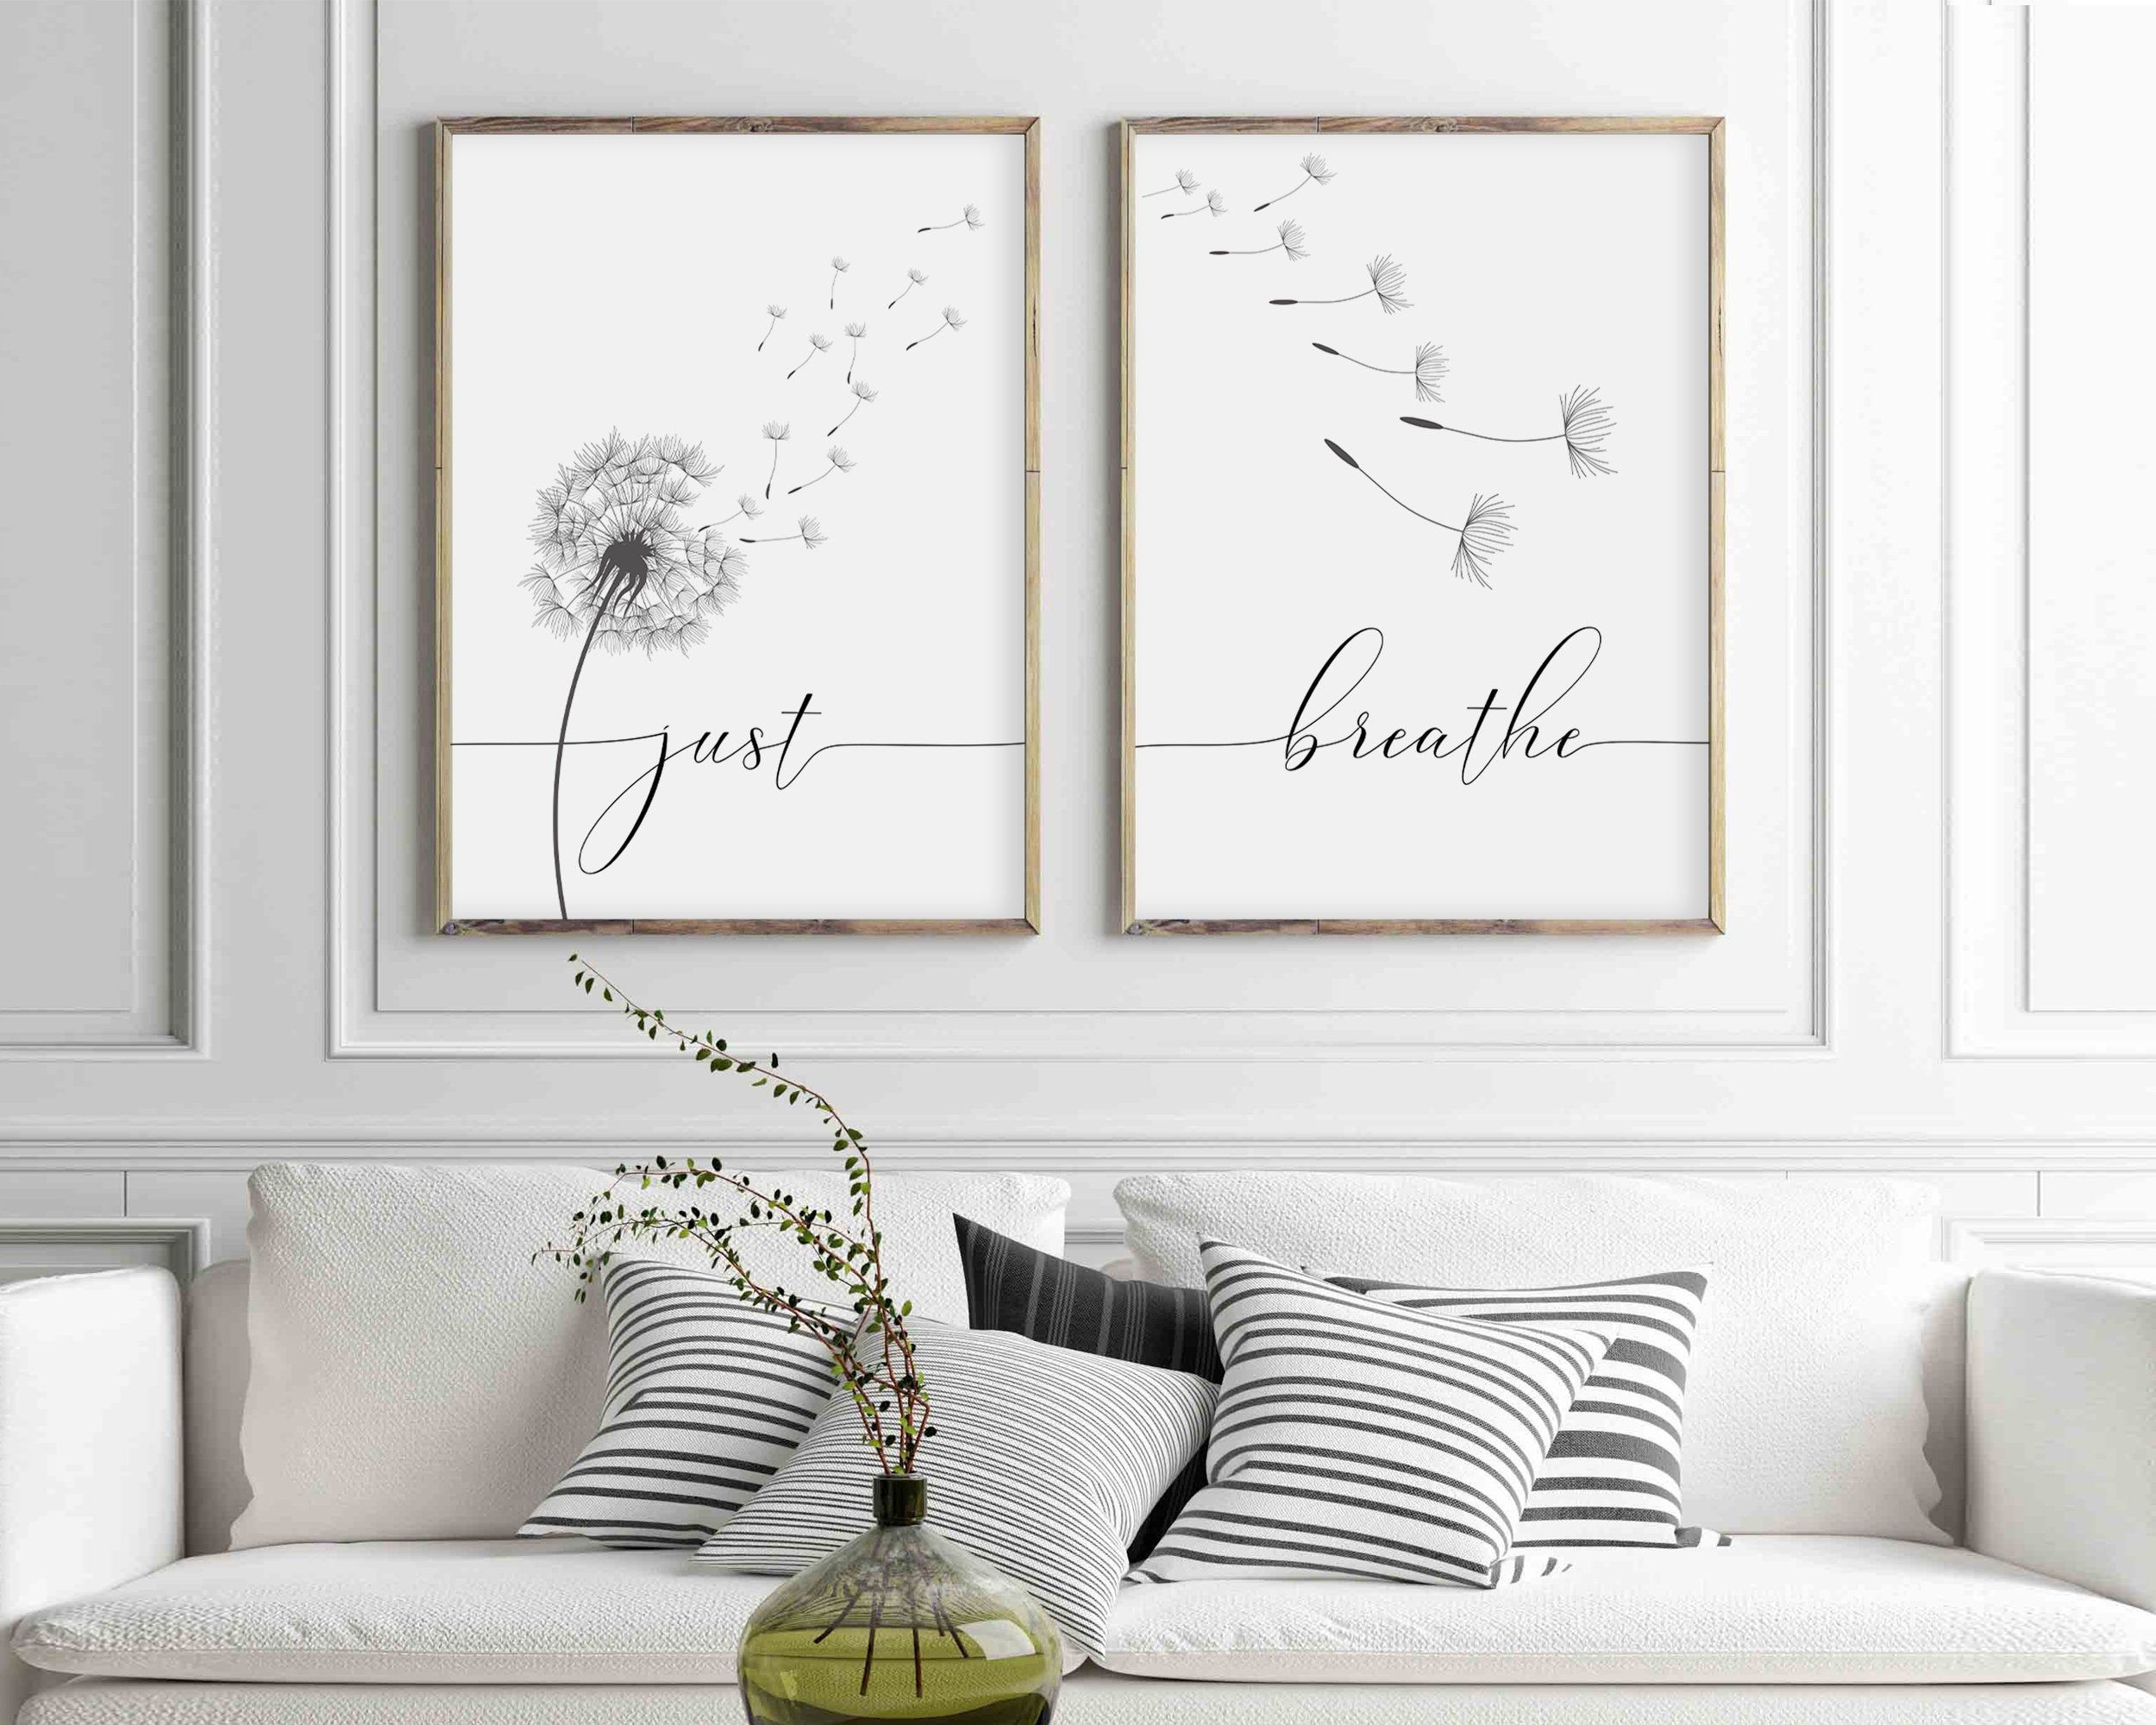 Just Breathe Dandelion Prints, Set Of 2 Prints, Inhale Exhale, Relax Quote, Meditation Prints, Buddha Art, Hand lettering, Yoga Wall Decor